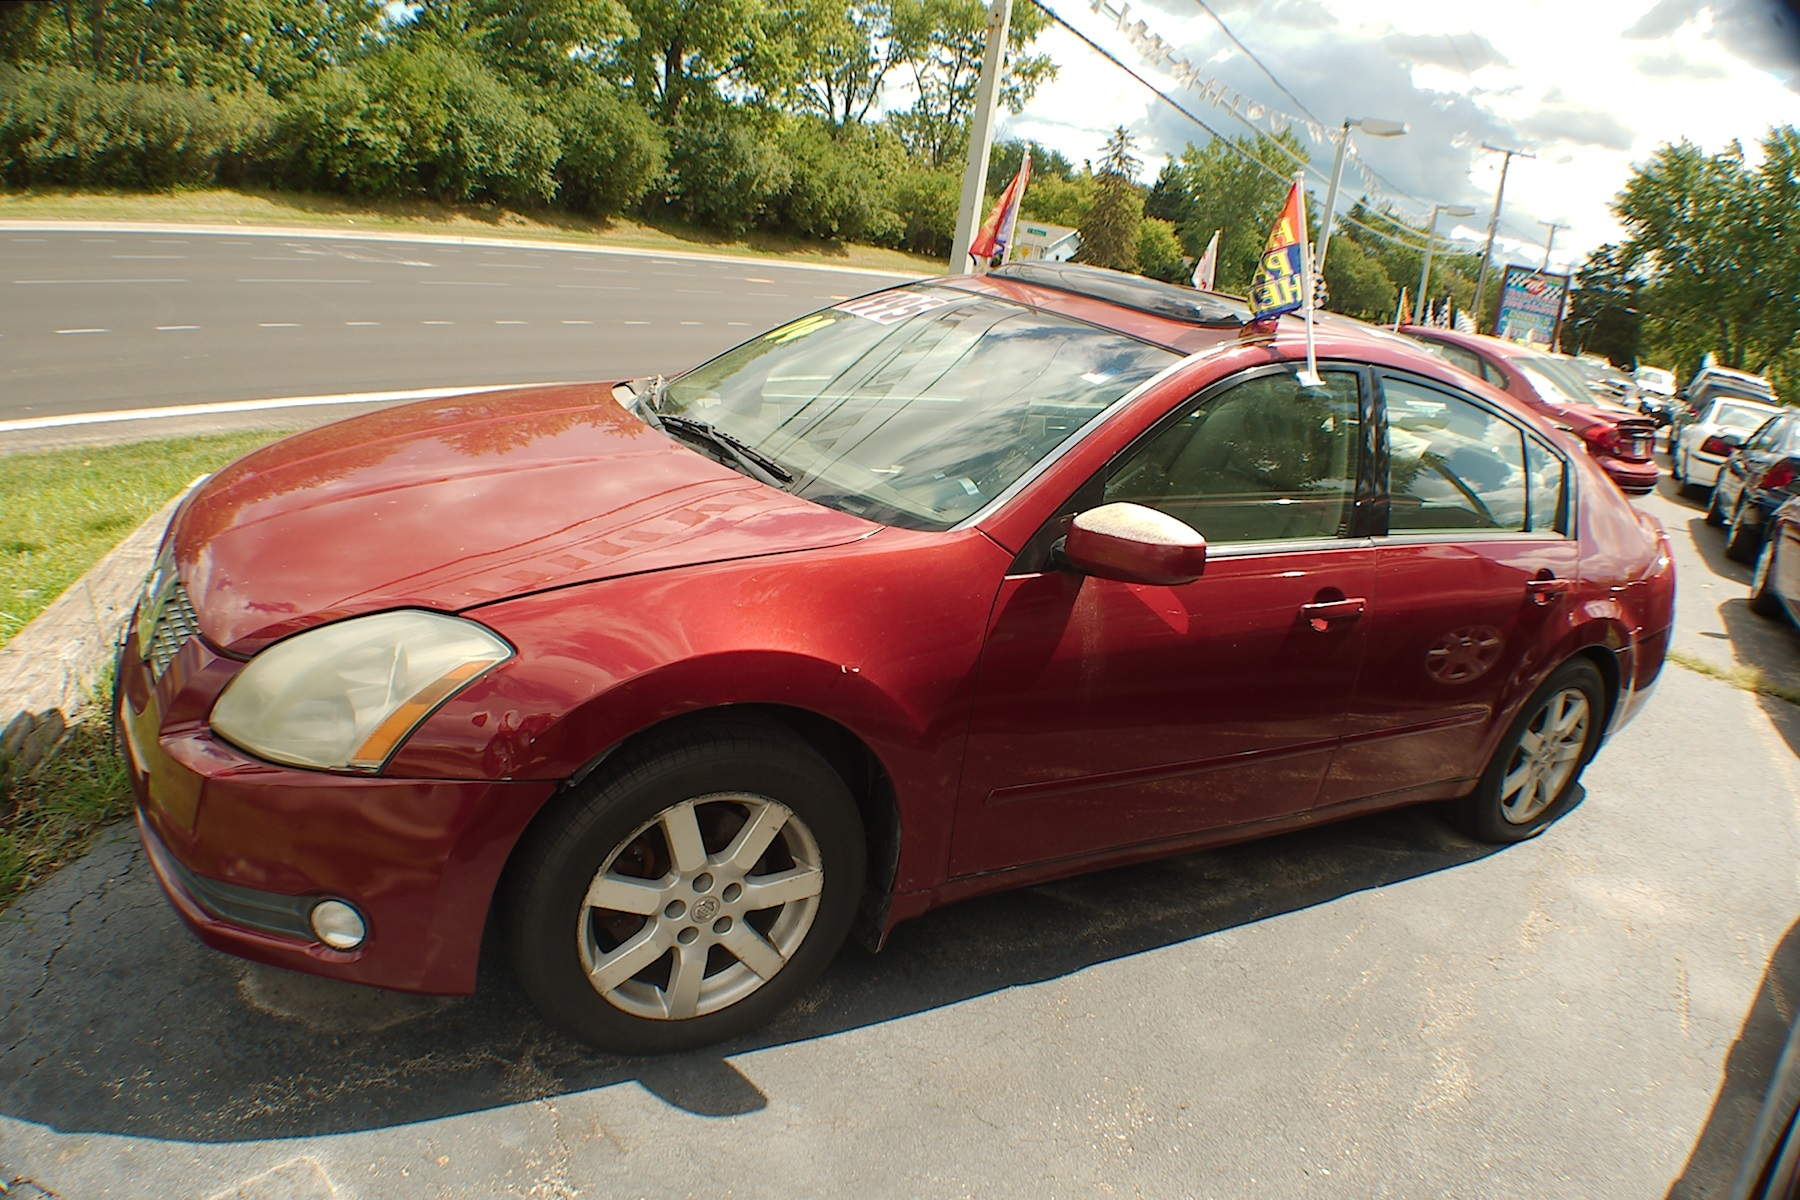 2004 Nissan Maxima SL Red Sedan Used Car Sale Antioch Zion Waukegan Lake County Illinois